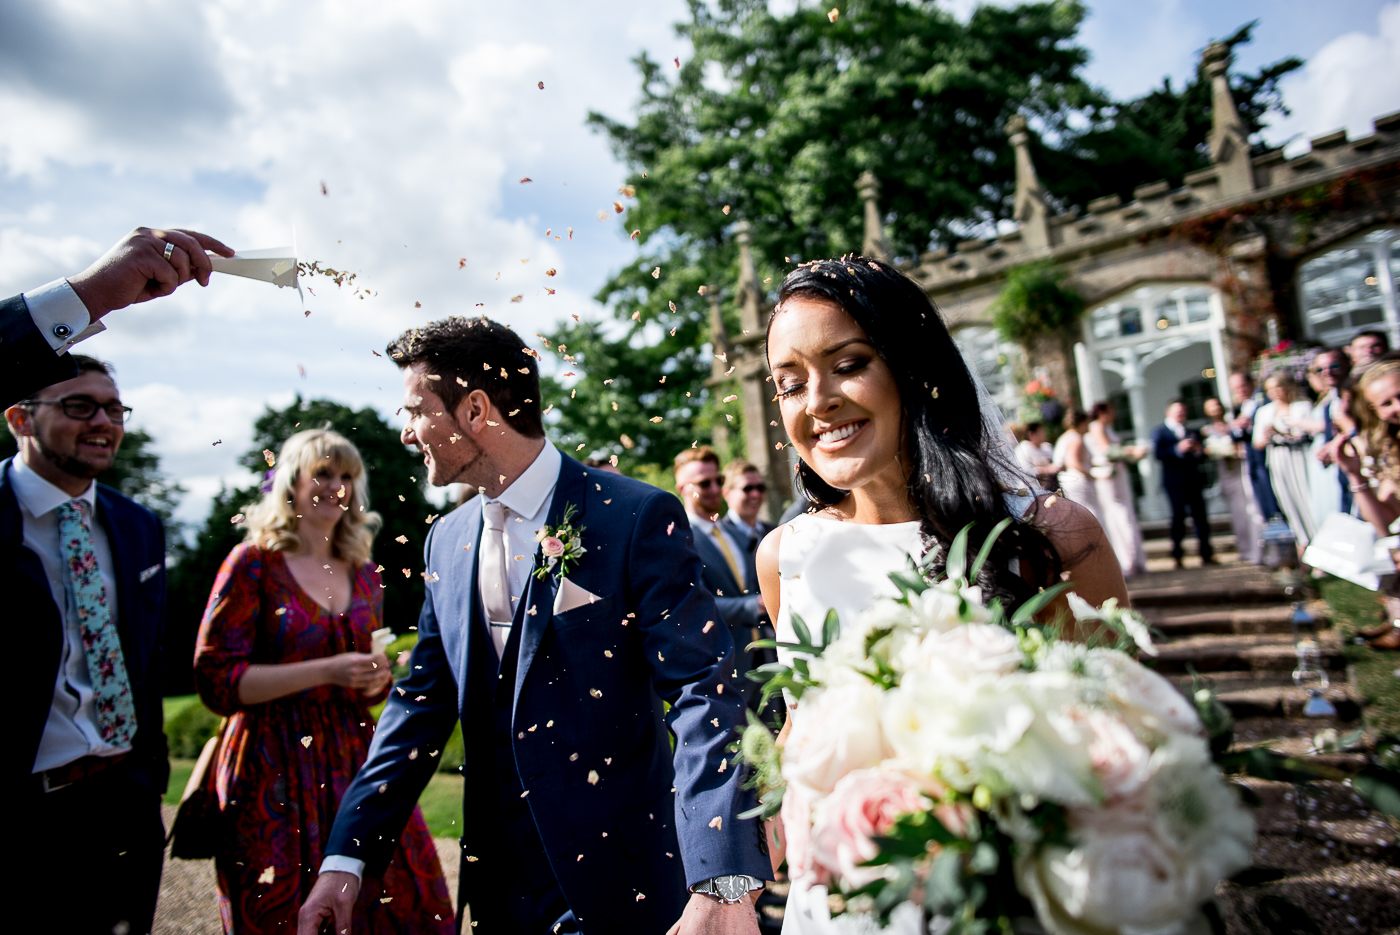 St Audries Park Wedding Photography-14.jpg